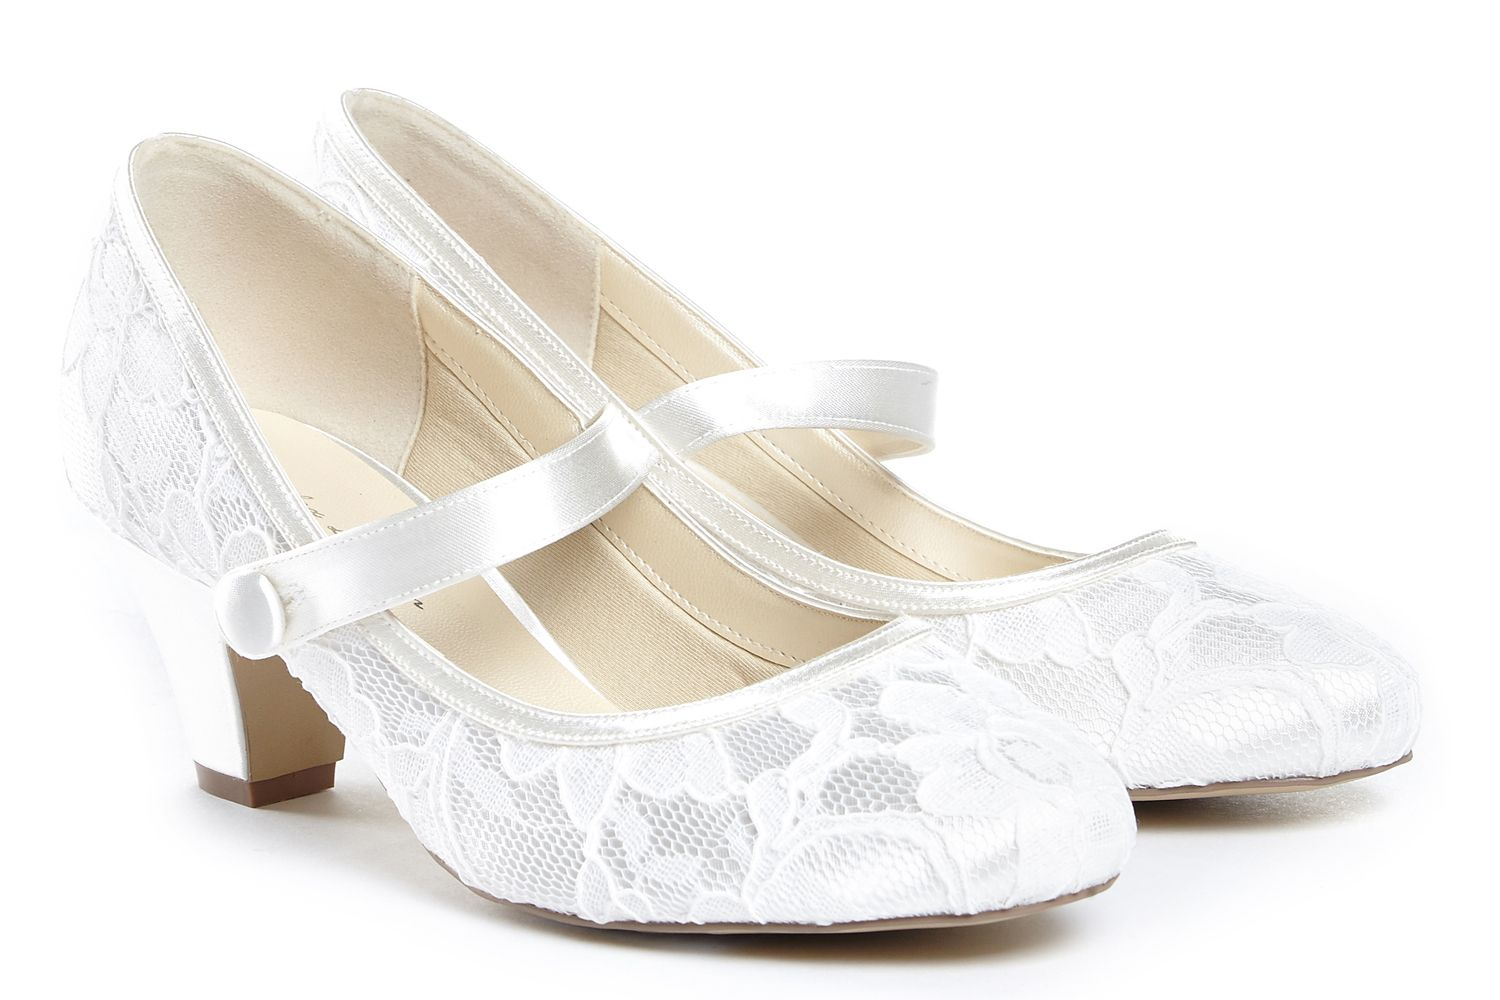 Vintage Wedding Shoes, Flats, Boots, Heels ADORING £37.50 AT vintagedancer.com